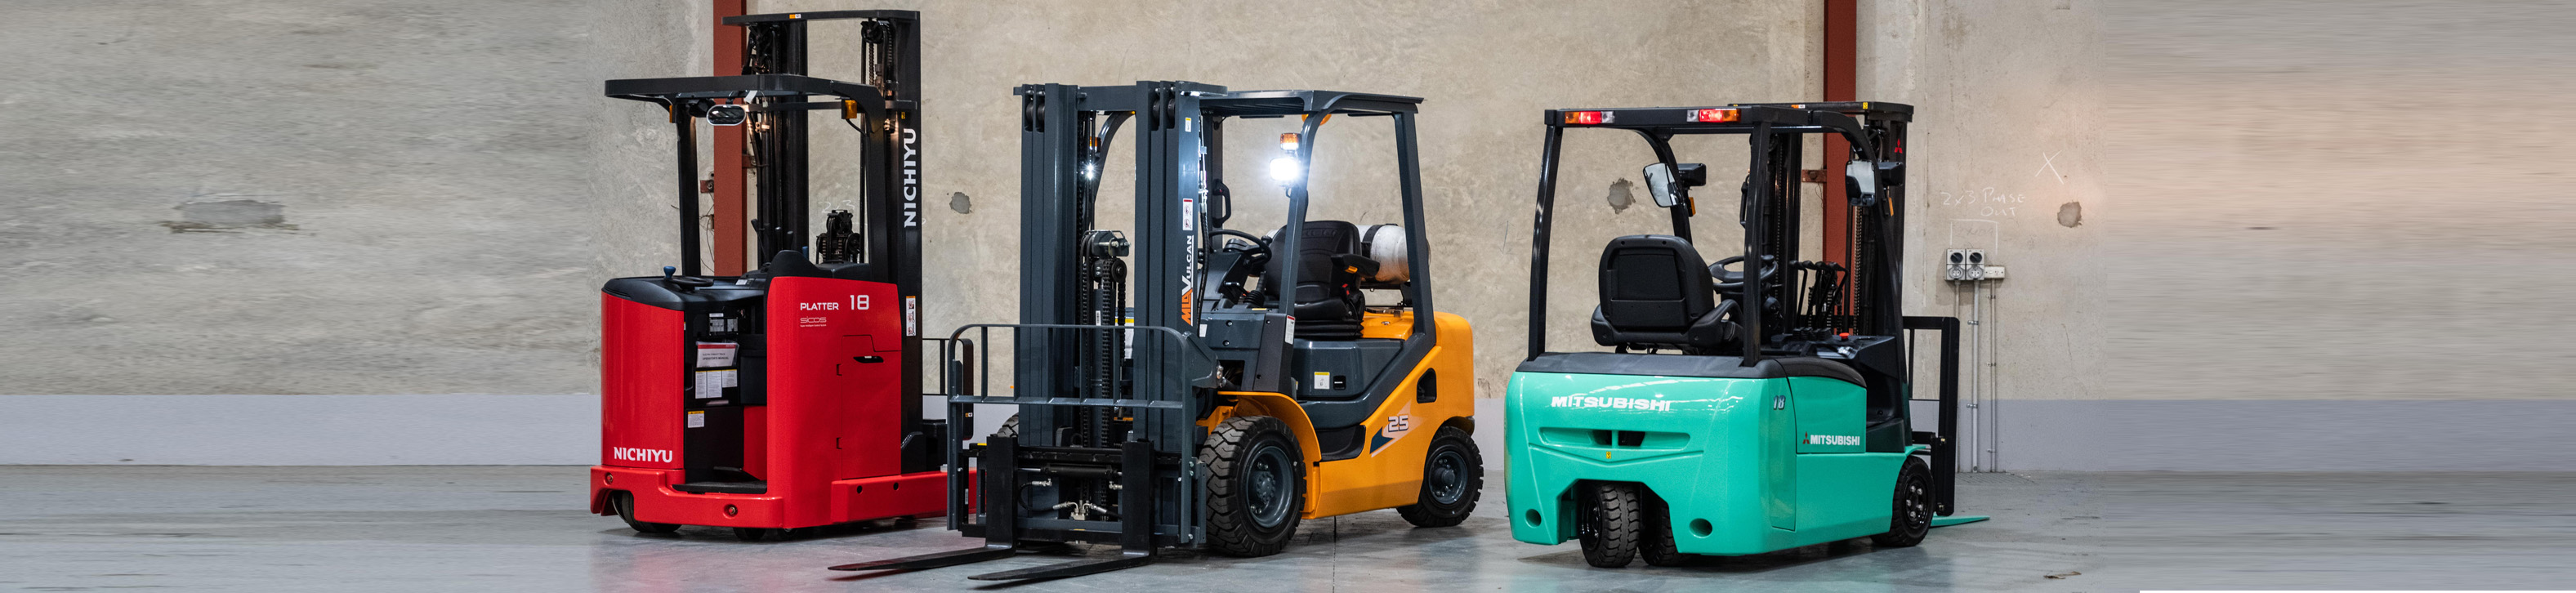 Mitsubishi and Vulcan Forklift Sales